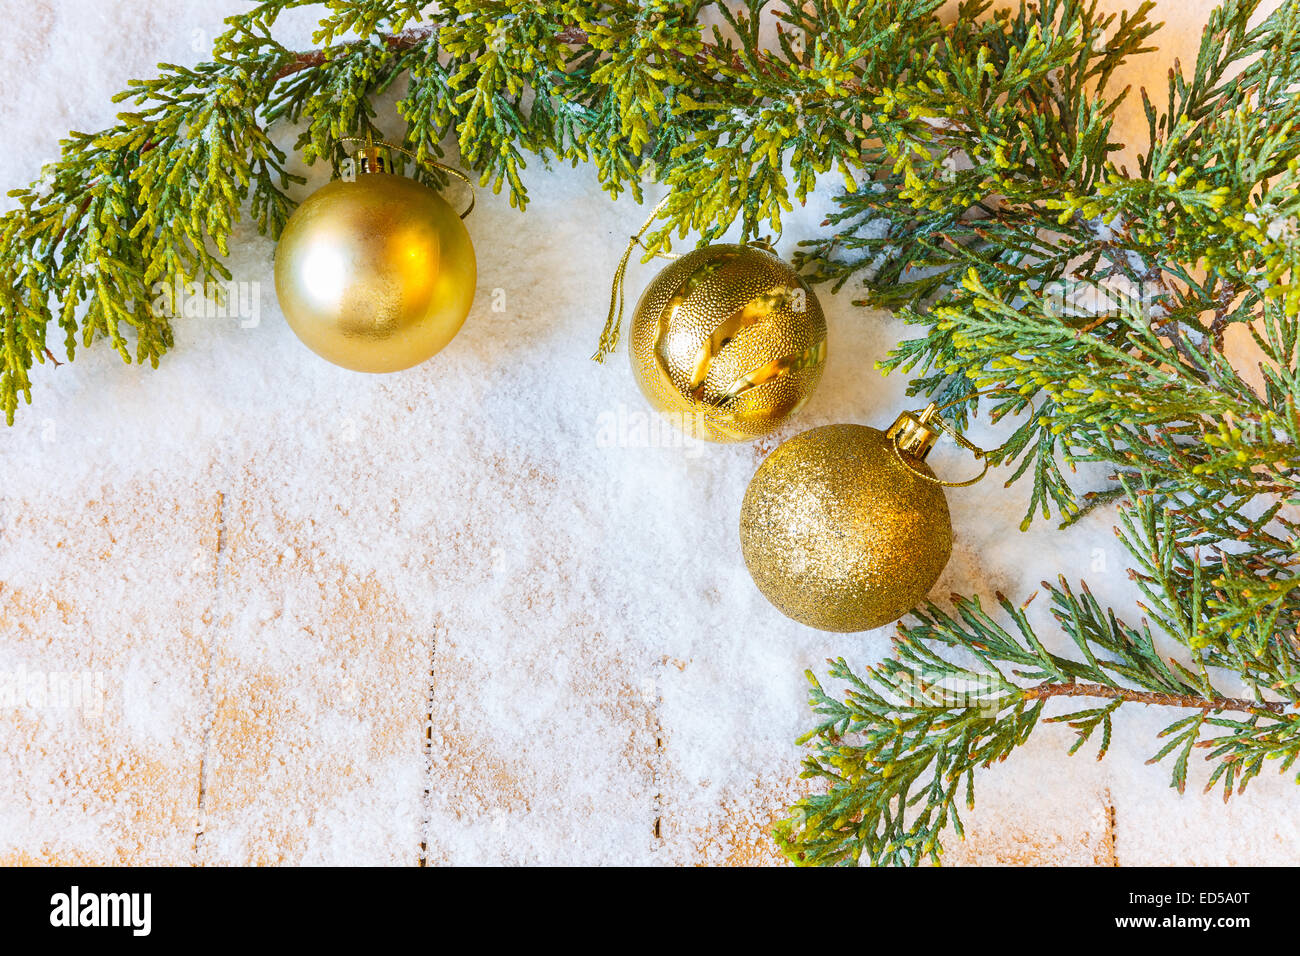 Christmas decorations and Christmas tree branch in the snow - Stock Image